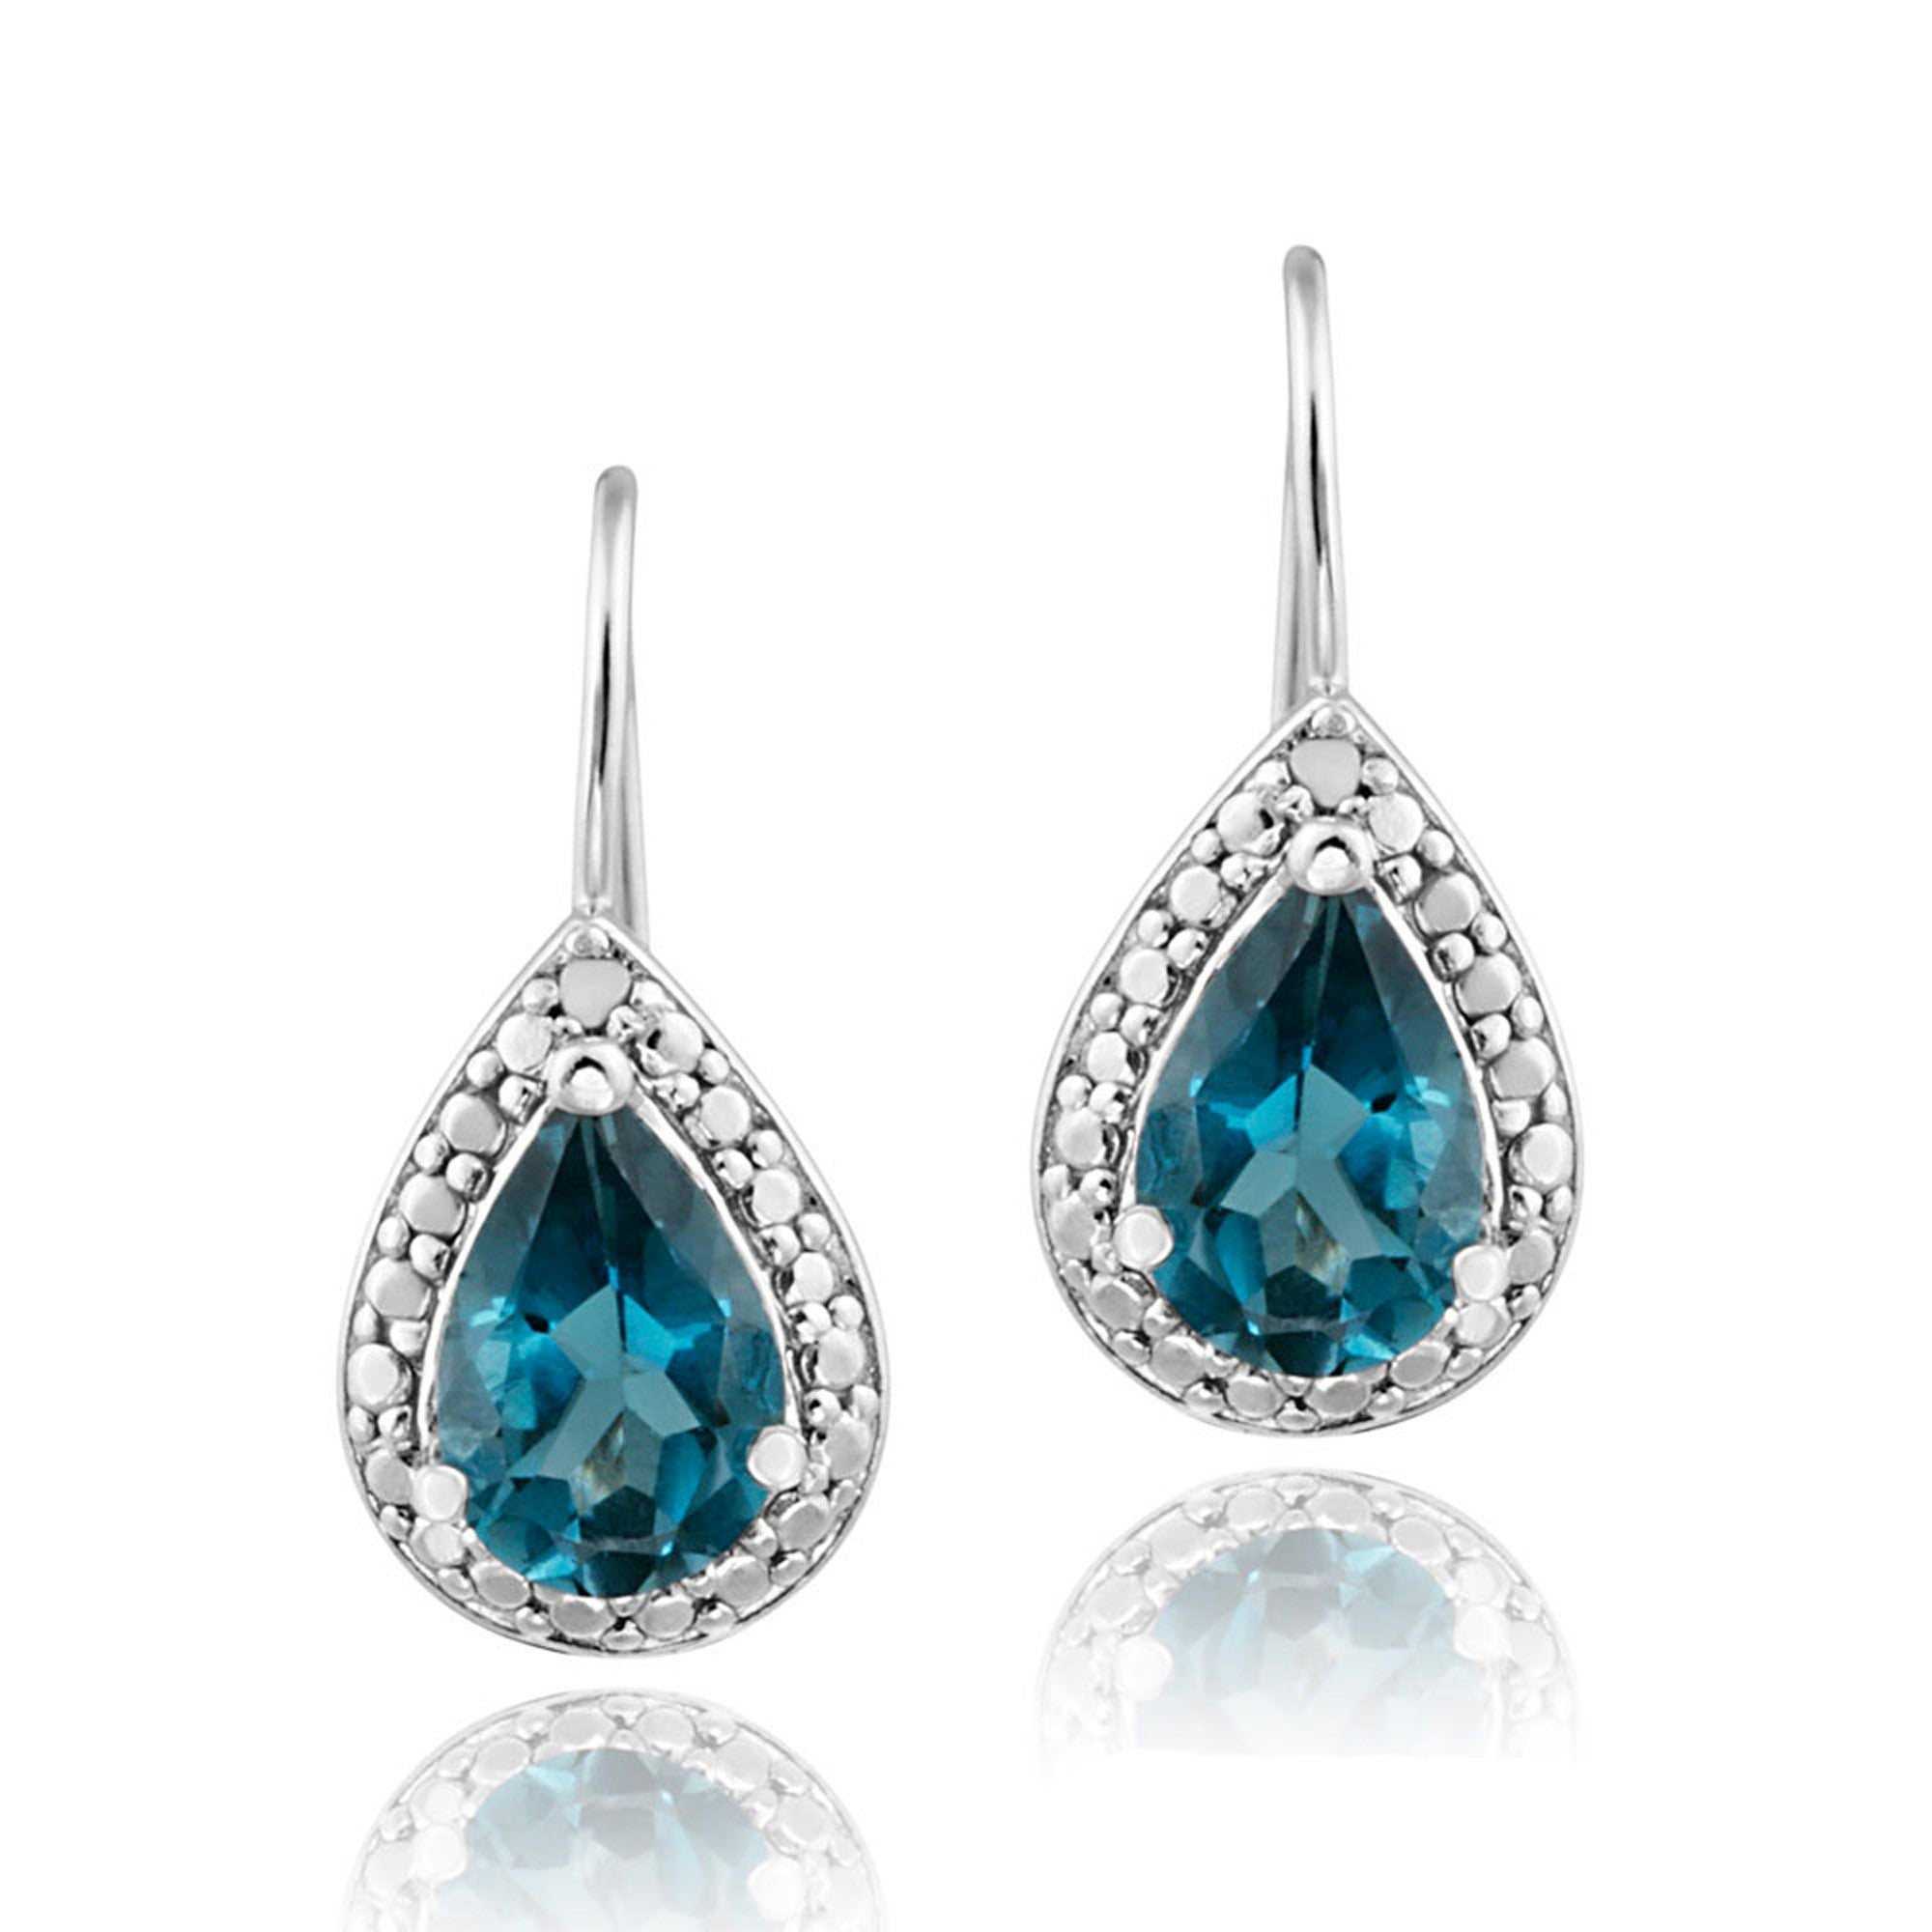 Sterling Silver Diamond & Gemstone Accent Dangle Earrings - Blue Topaz